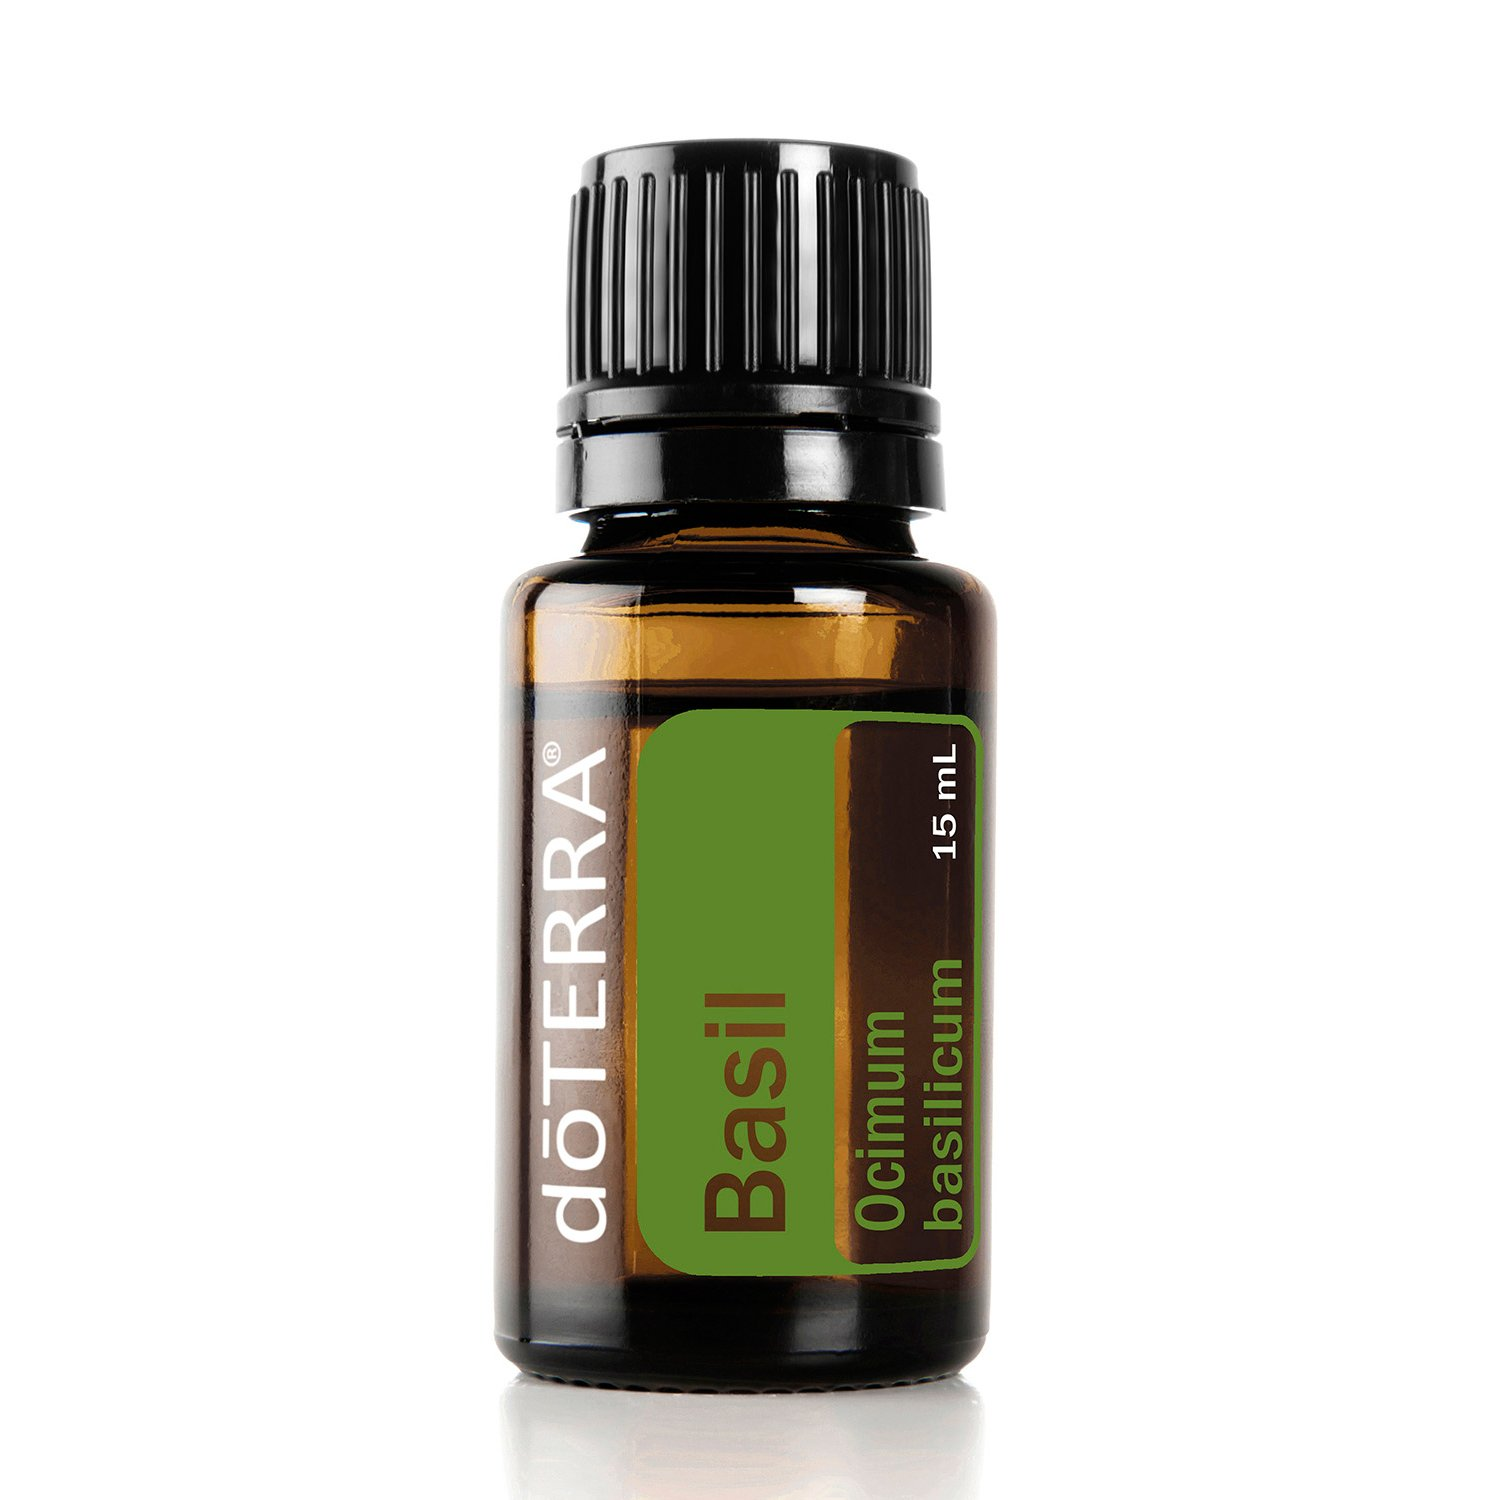 doTERRA Basil Essential Oil - Supports Clean, Clear, and Healthy Skin, Cardiovascular Health, Promotes Mental Alertness and Lessens Anxious Feelings; For Diffusion, Internal, or Topical Use - 15 ml